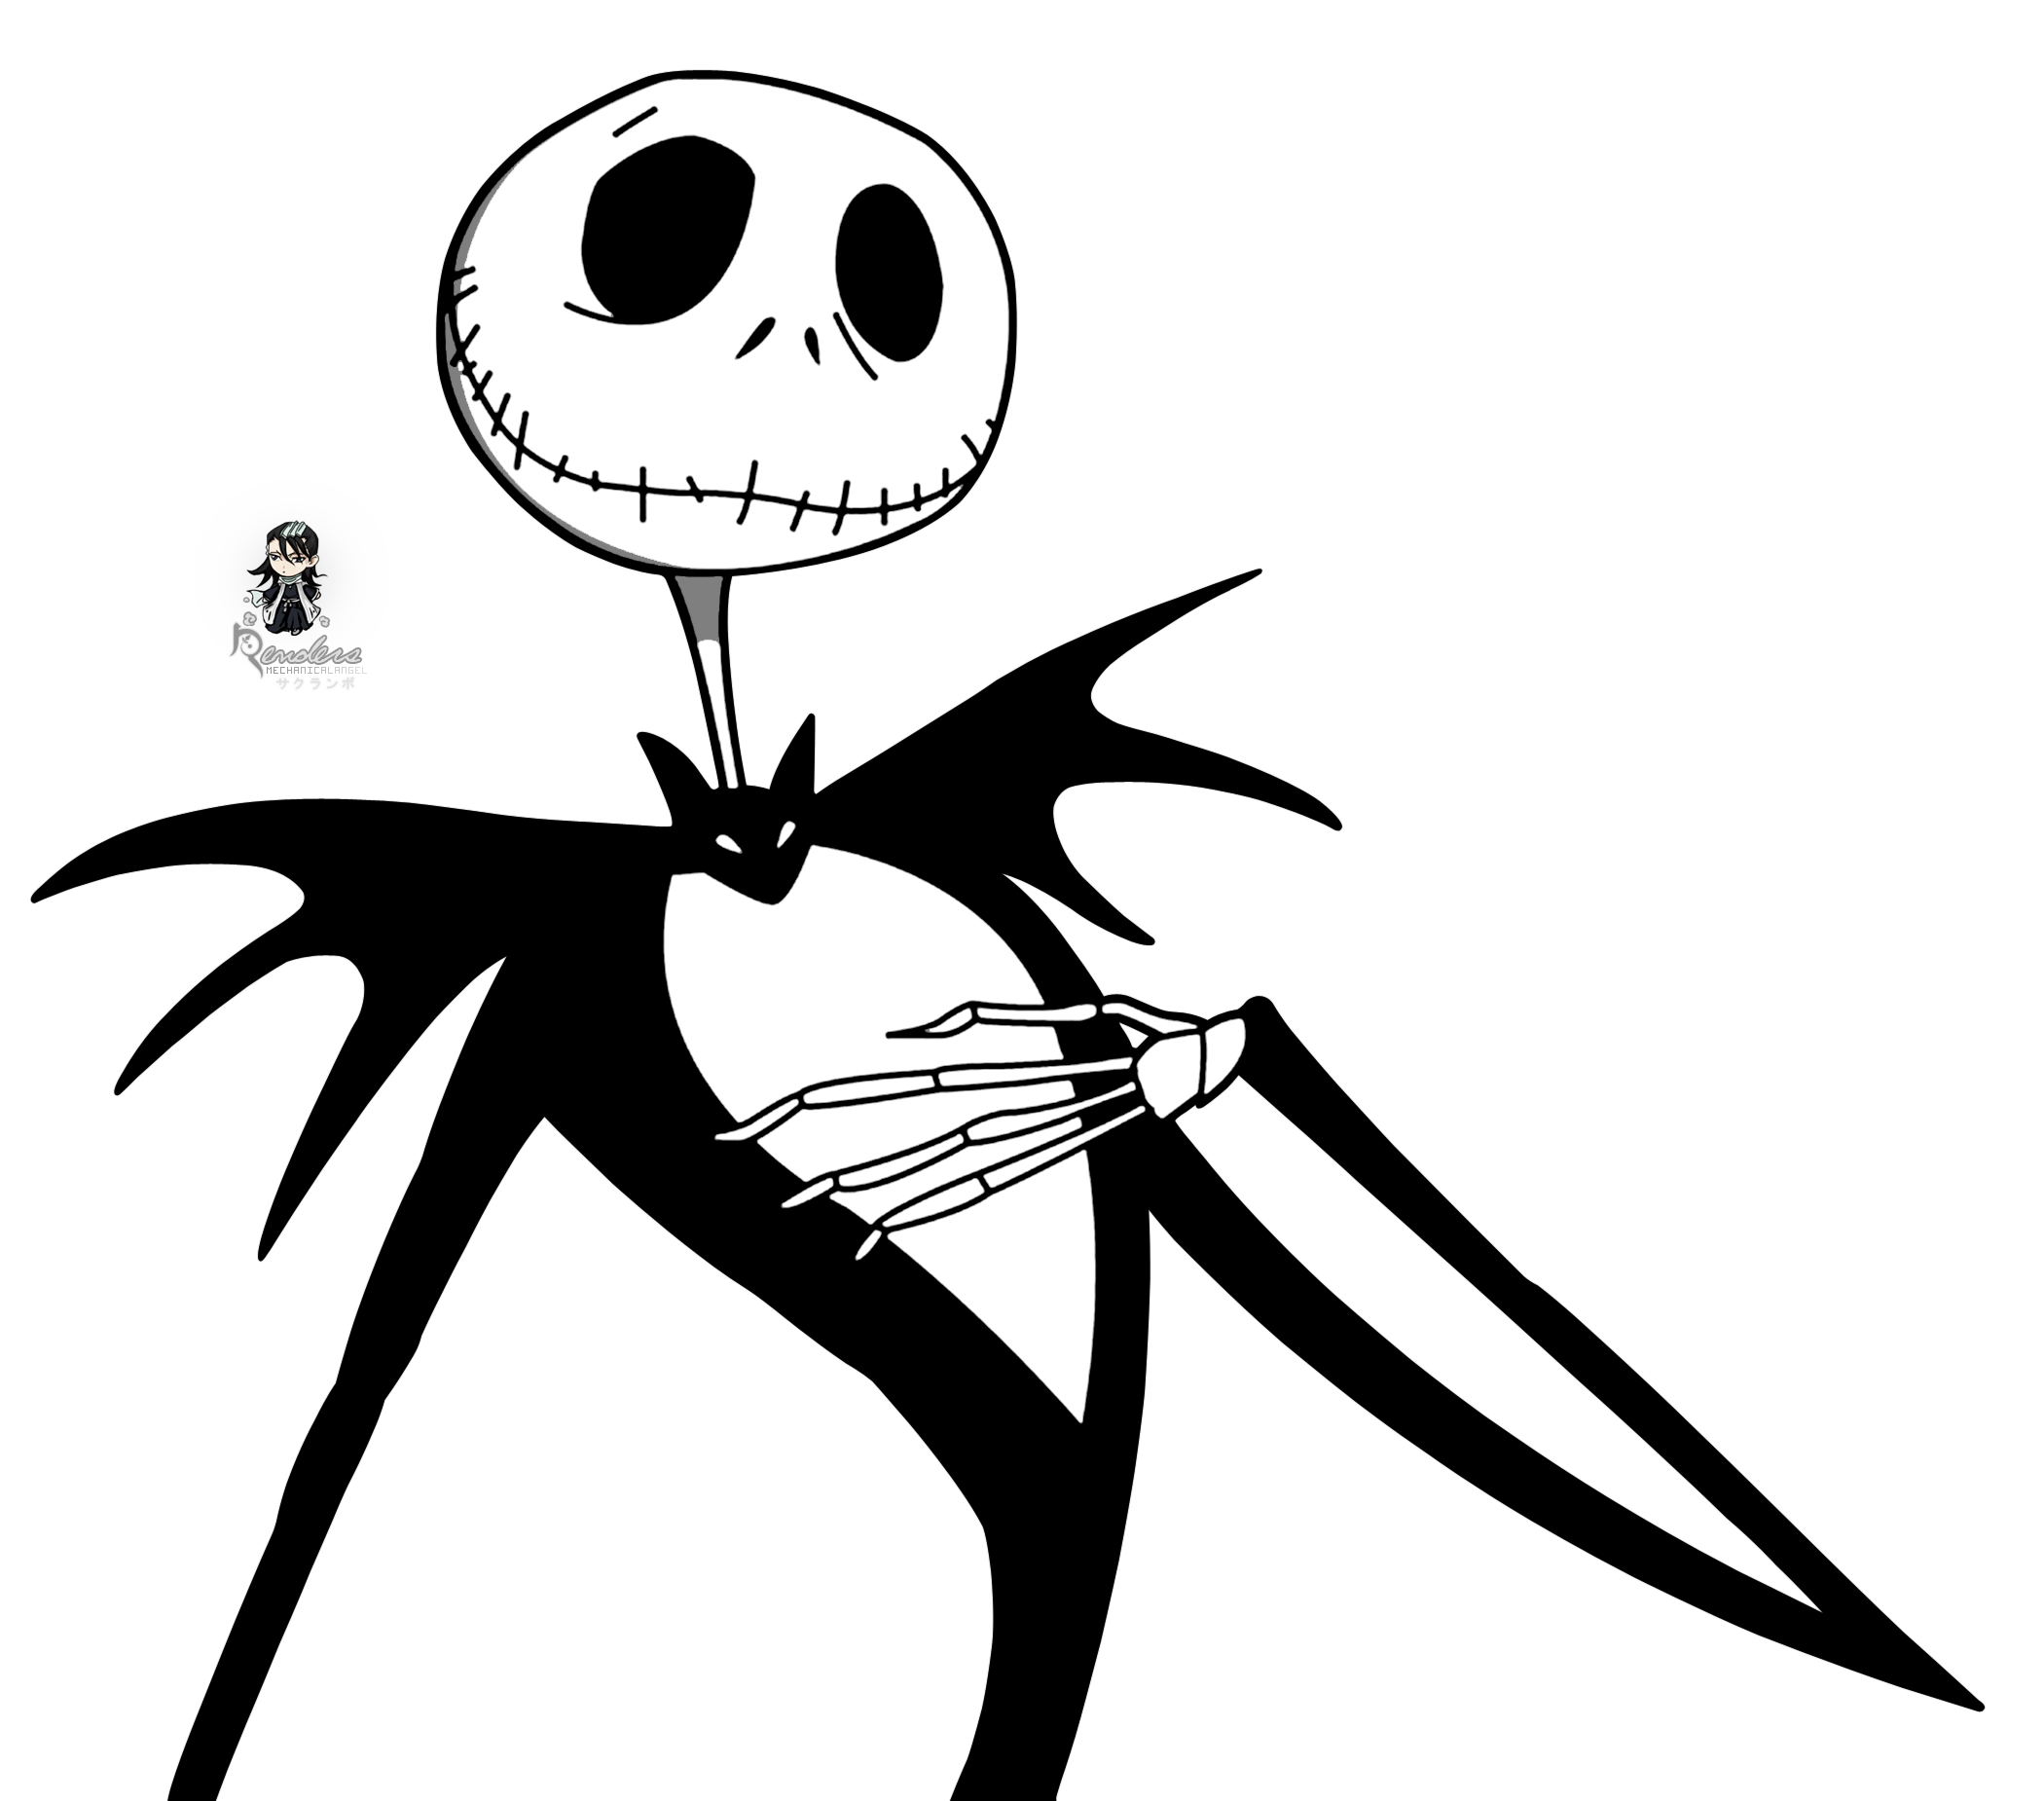 Zero drawing nightmare before christmas. Silhouette render the jack